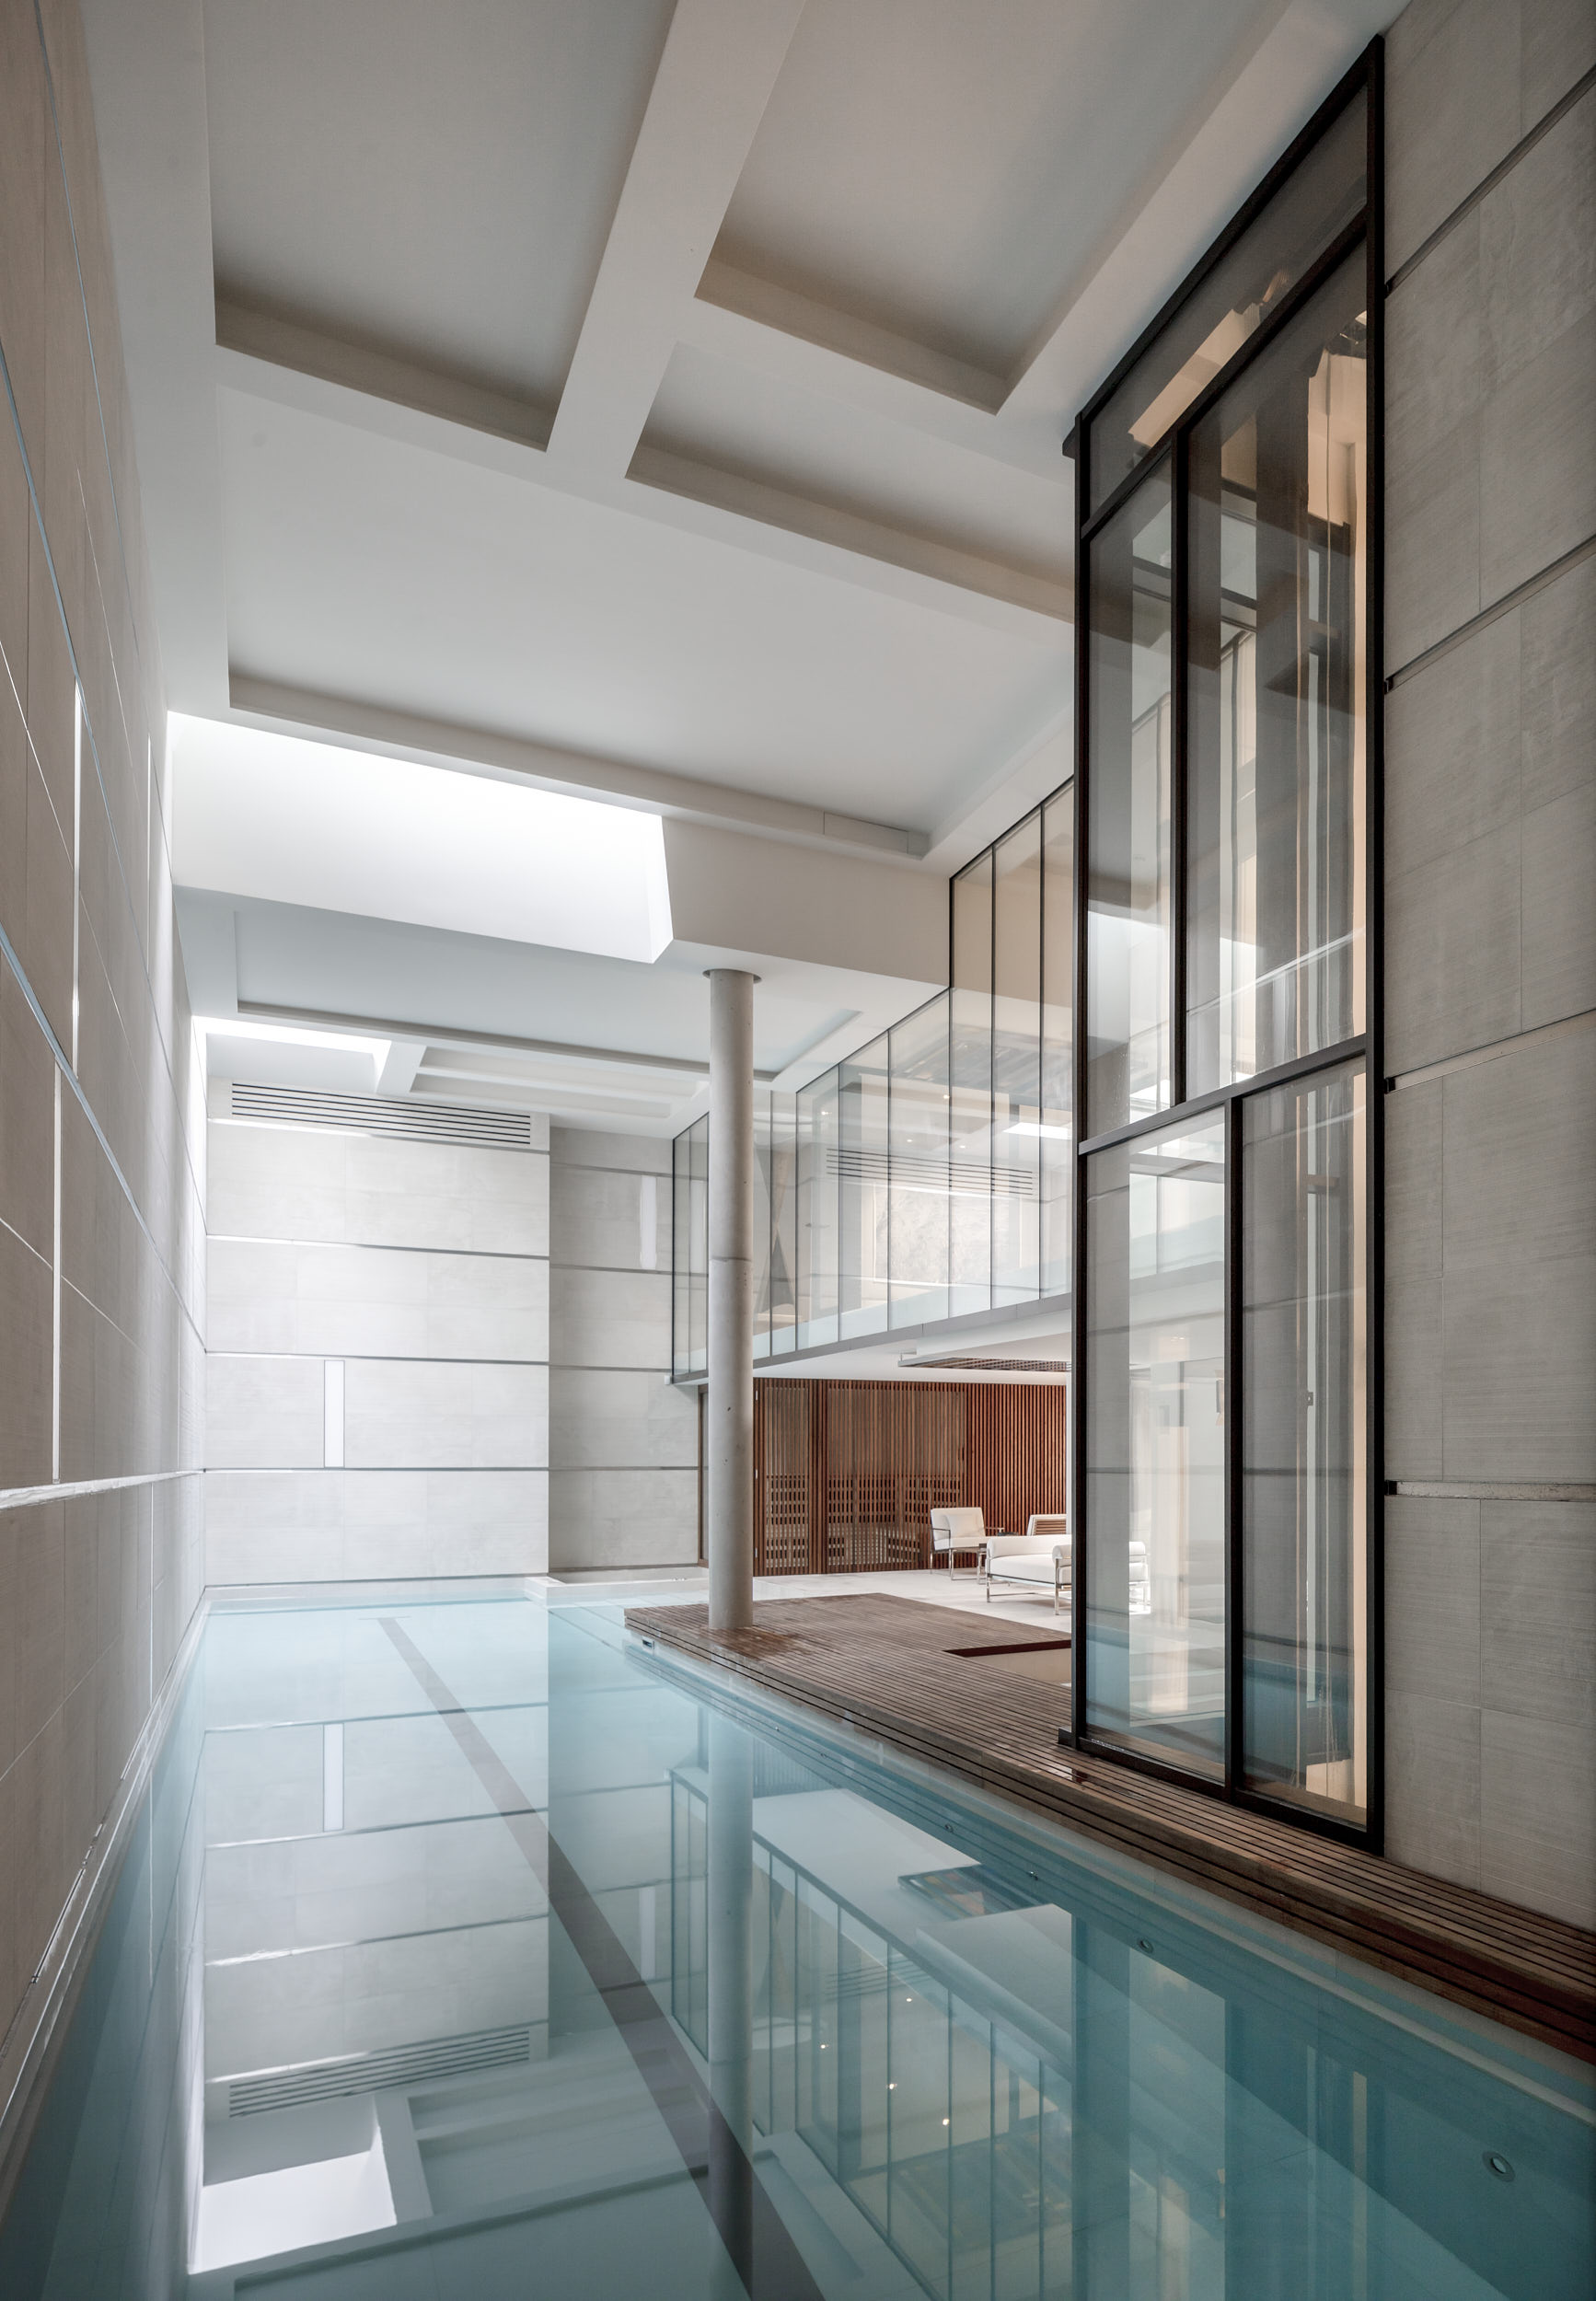 Stunning subterranean pool features variable lighting modes and rooflights.